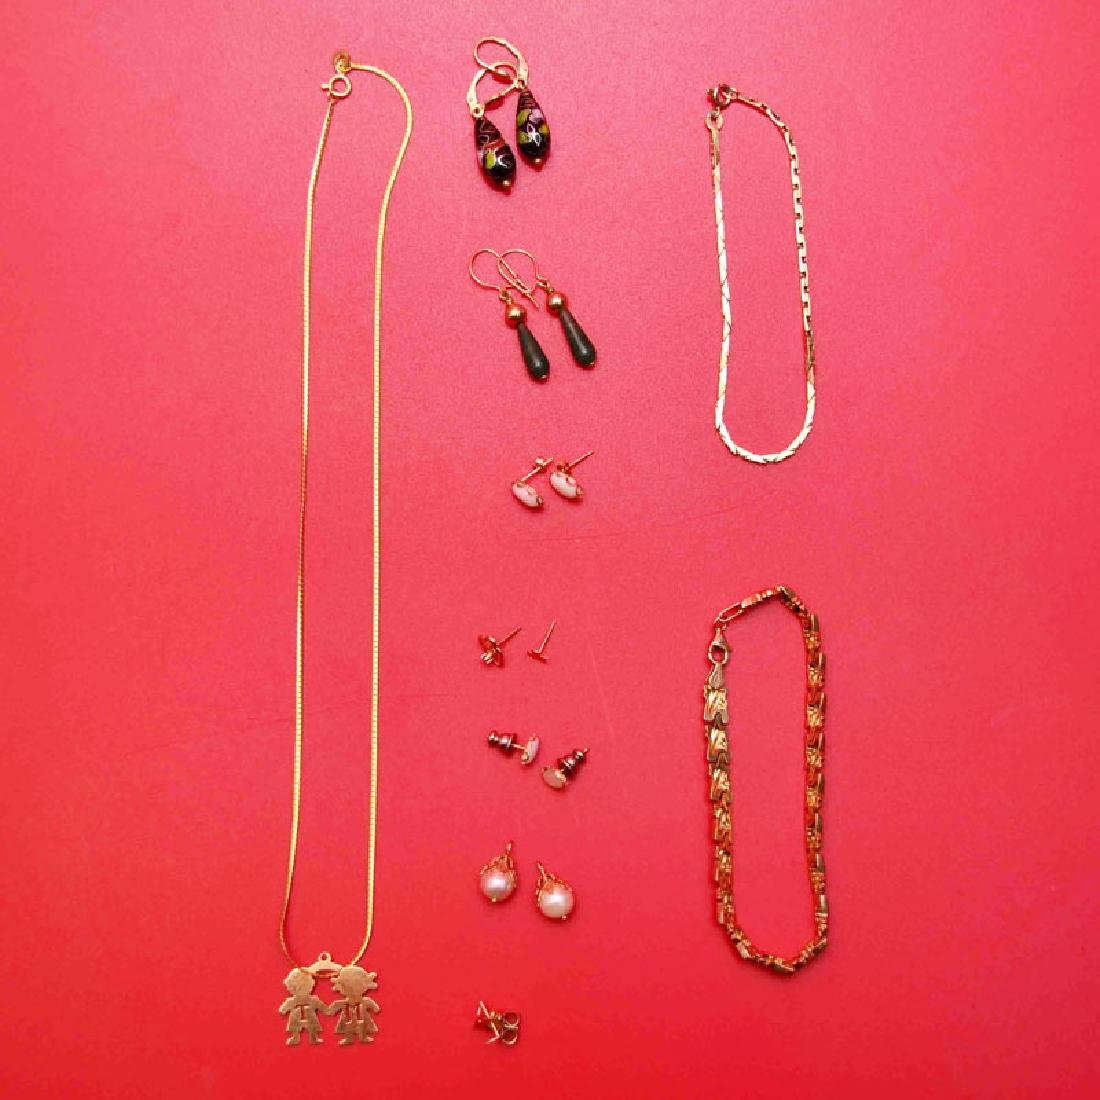 Vintage 14k Gold Jewelry (Necklaces, Earrings Etc)